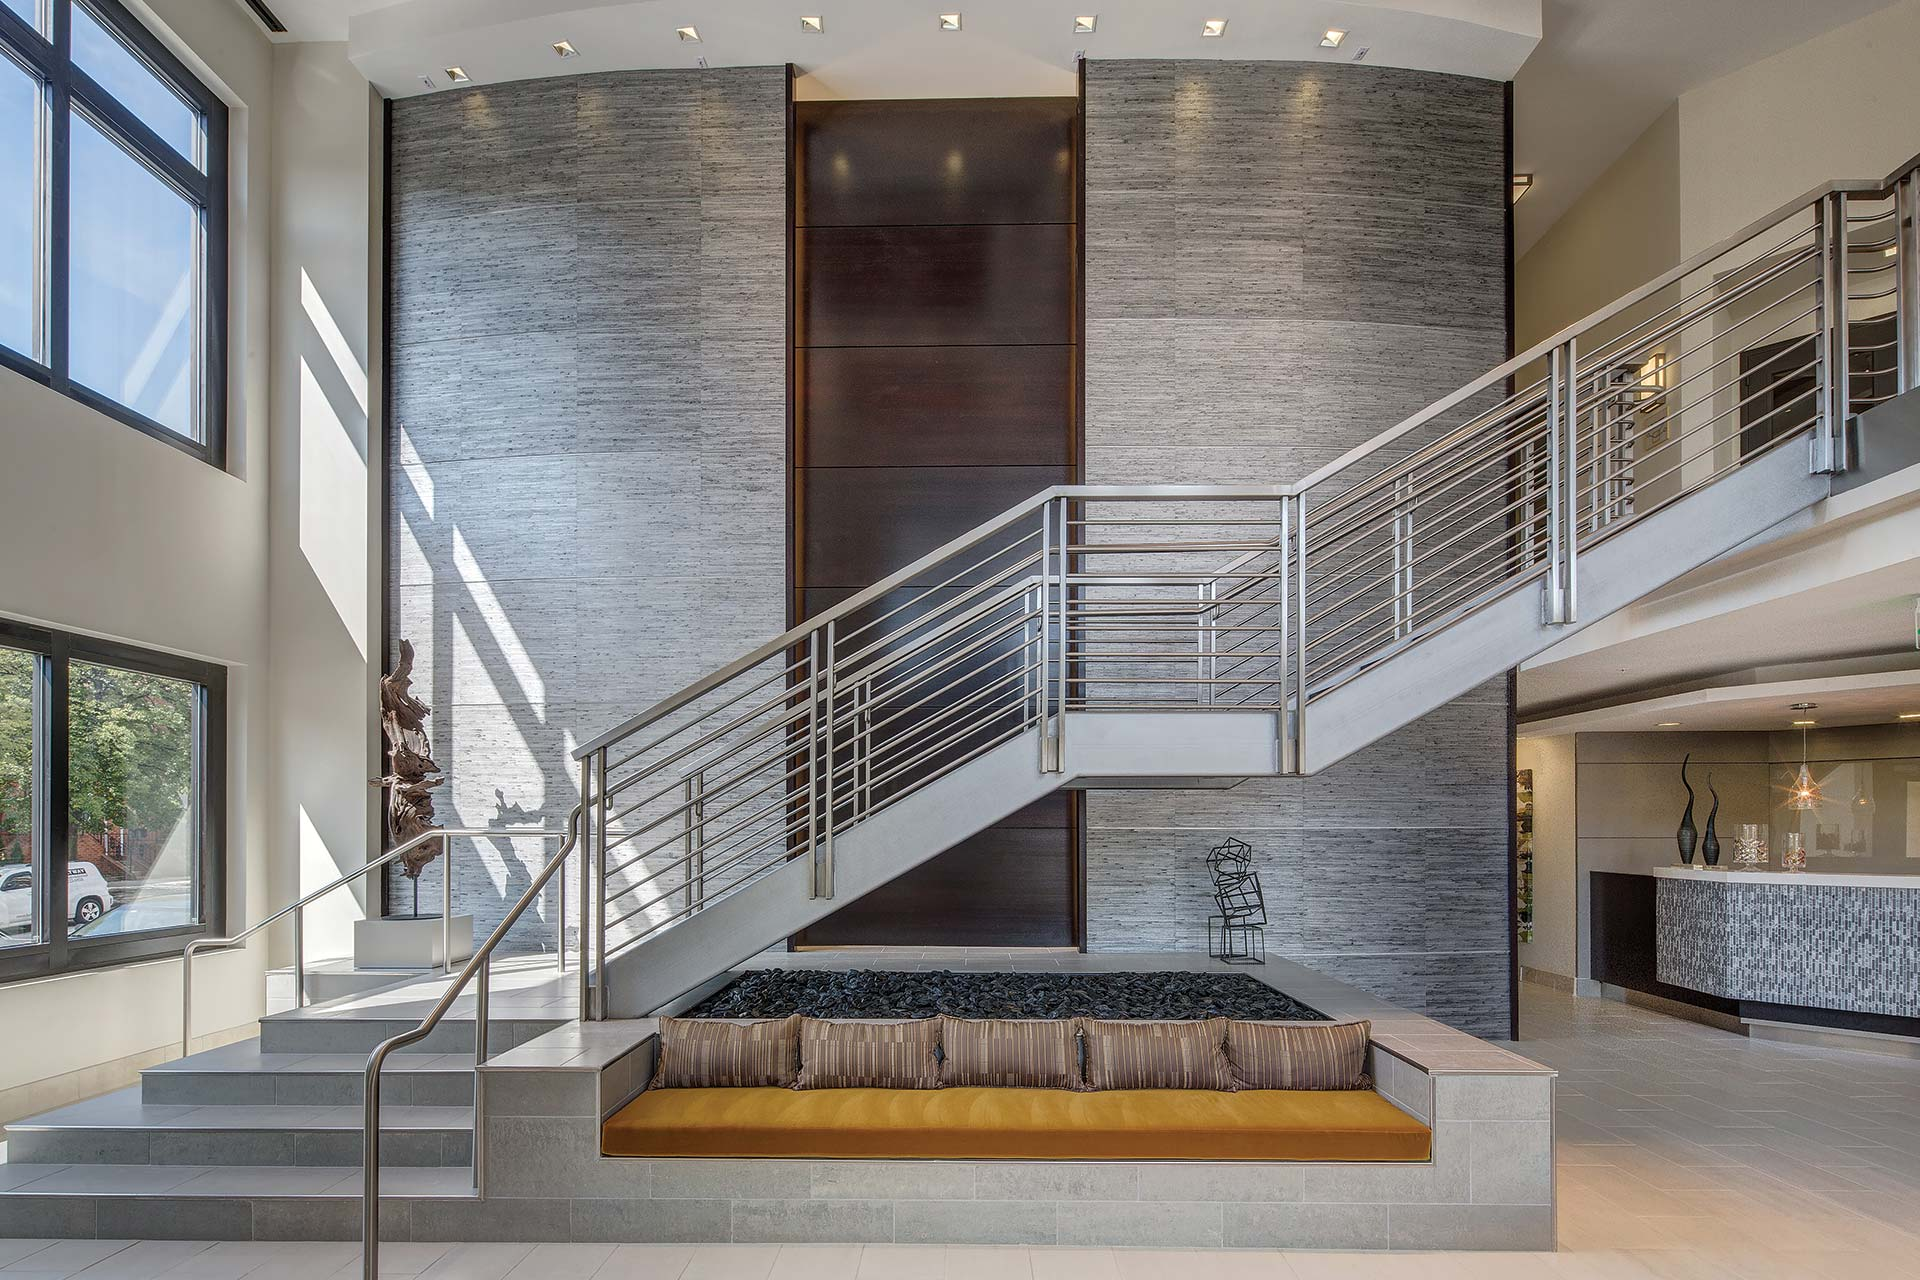 jefferson square lobby with a grand staircase, large windows, concierge desk and bench seating - jefferson apartment group